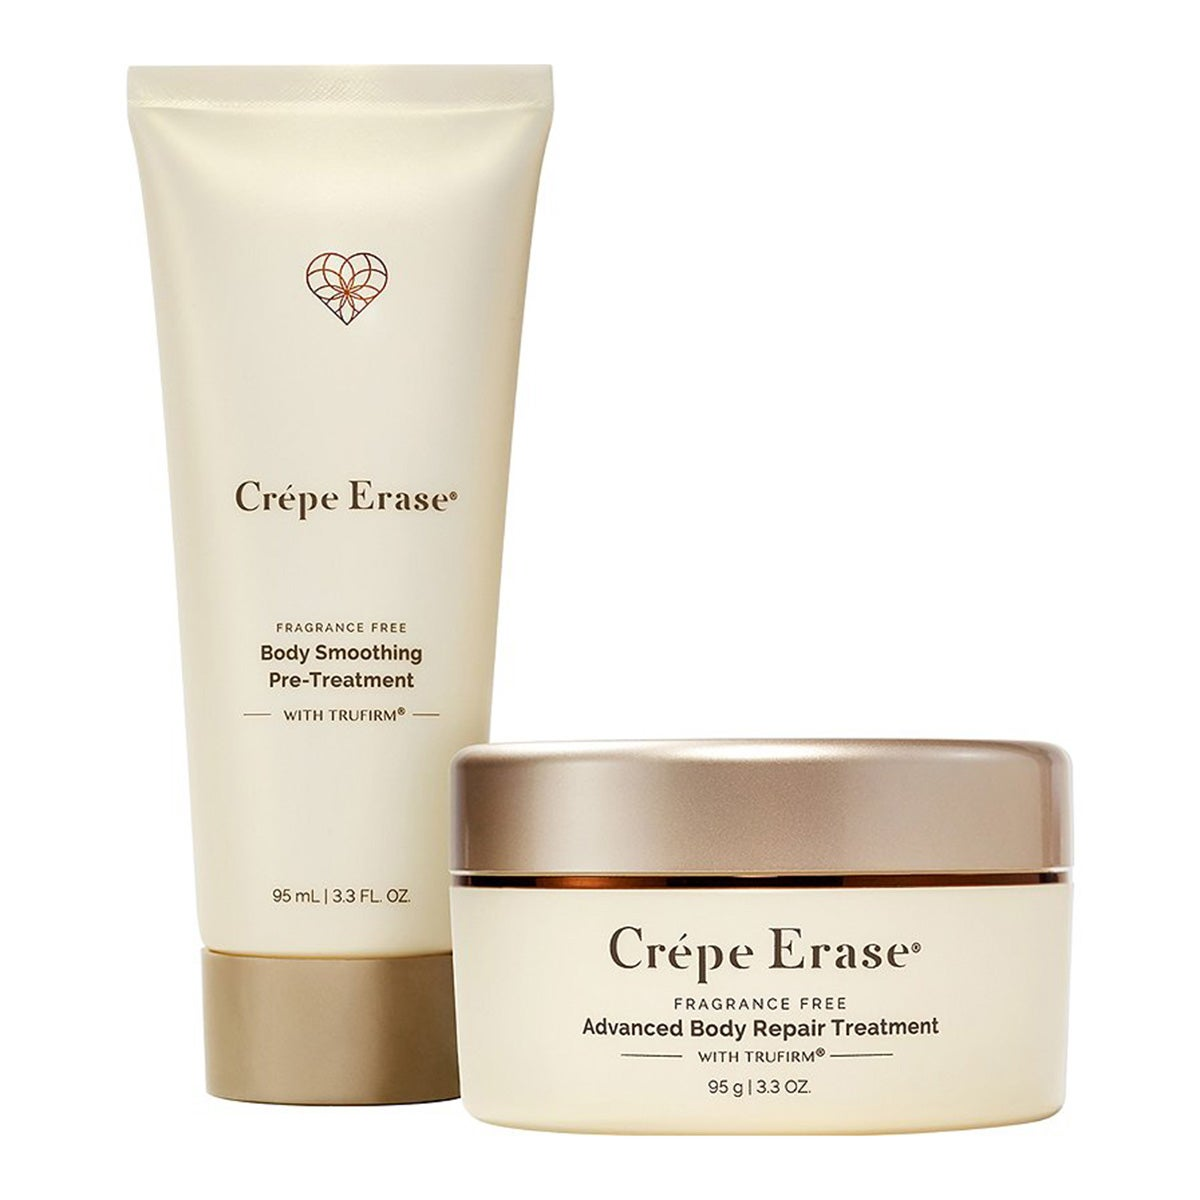 Crepe Erase 2-Step Advanced Body Treatment System